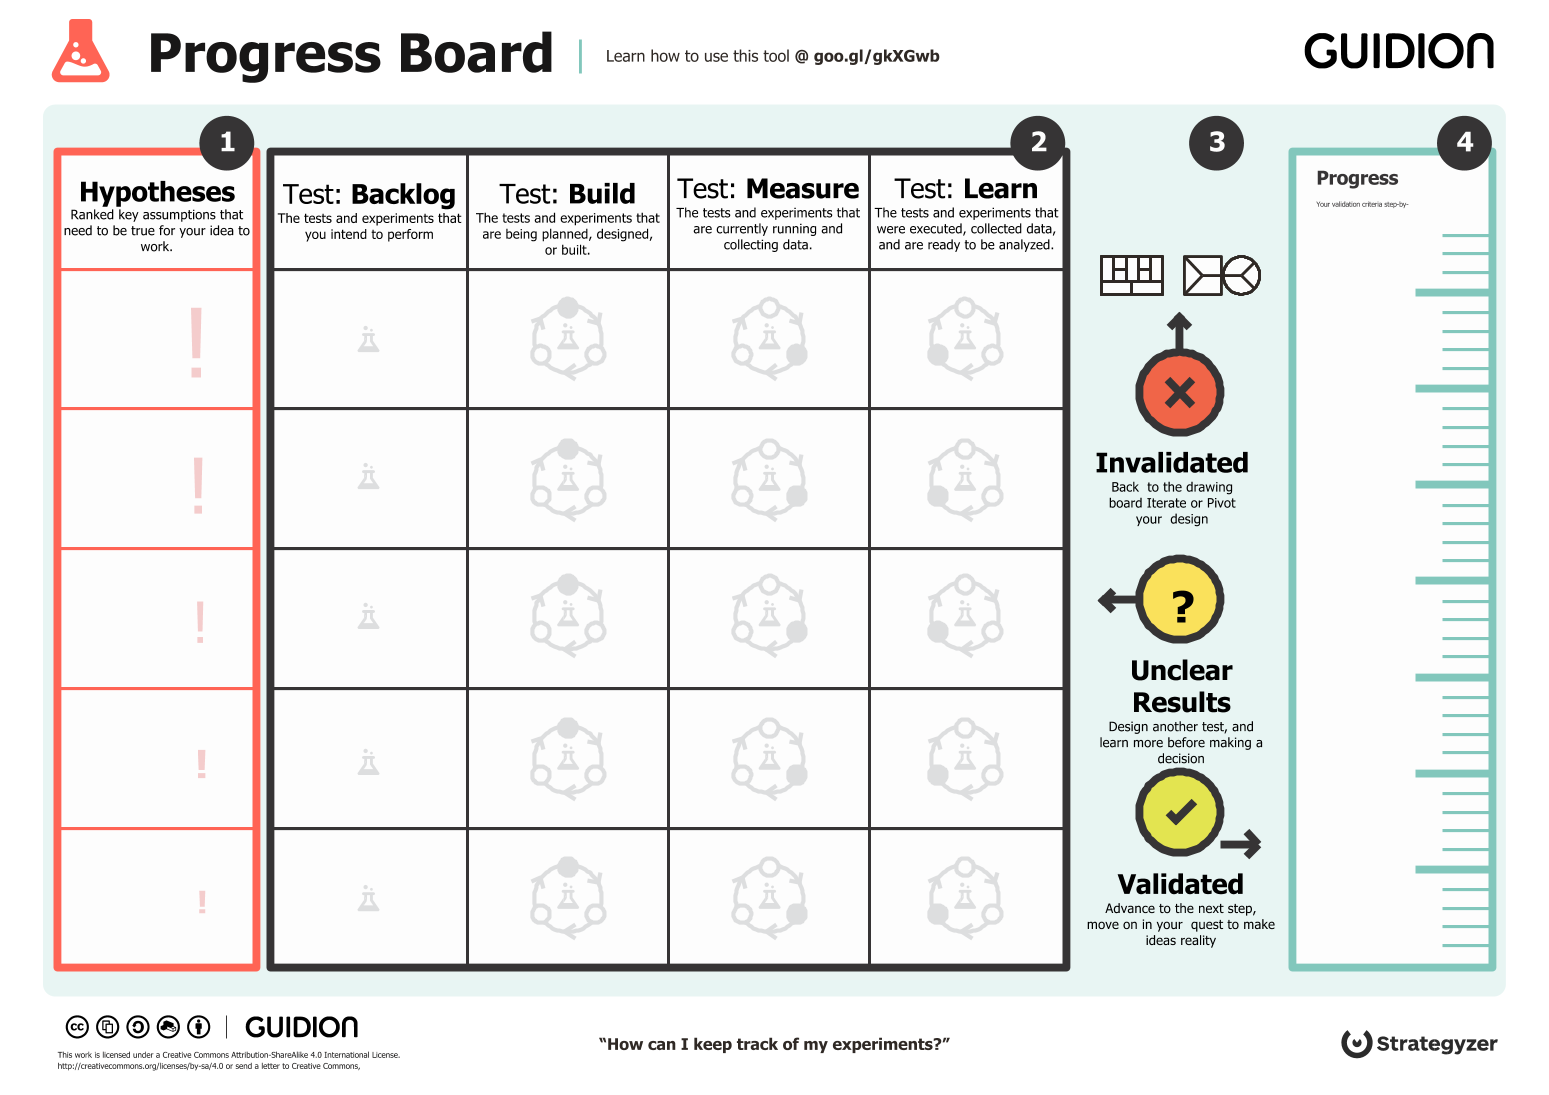 Progress Board